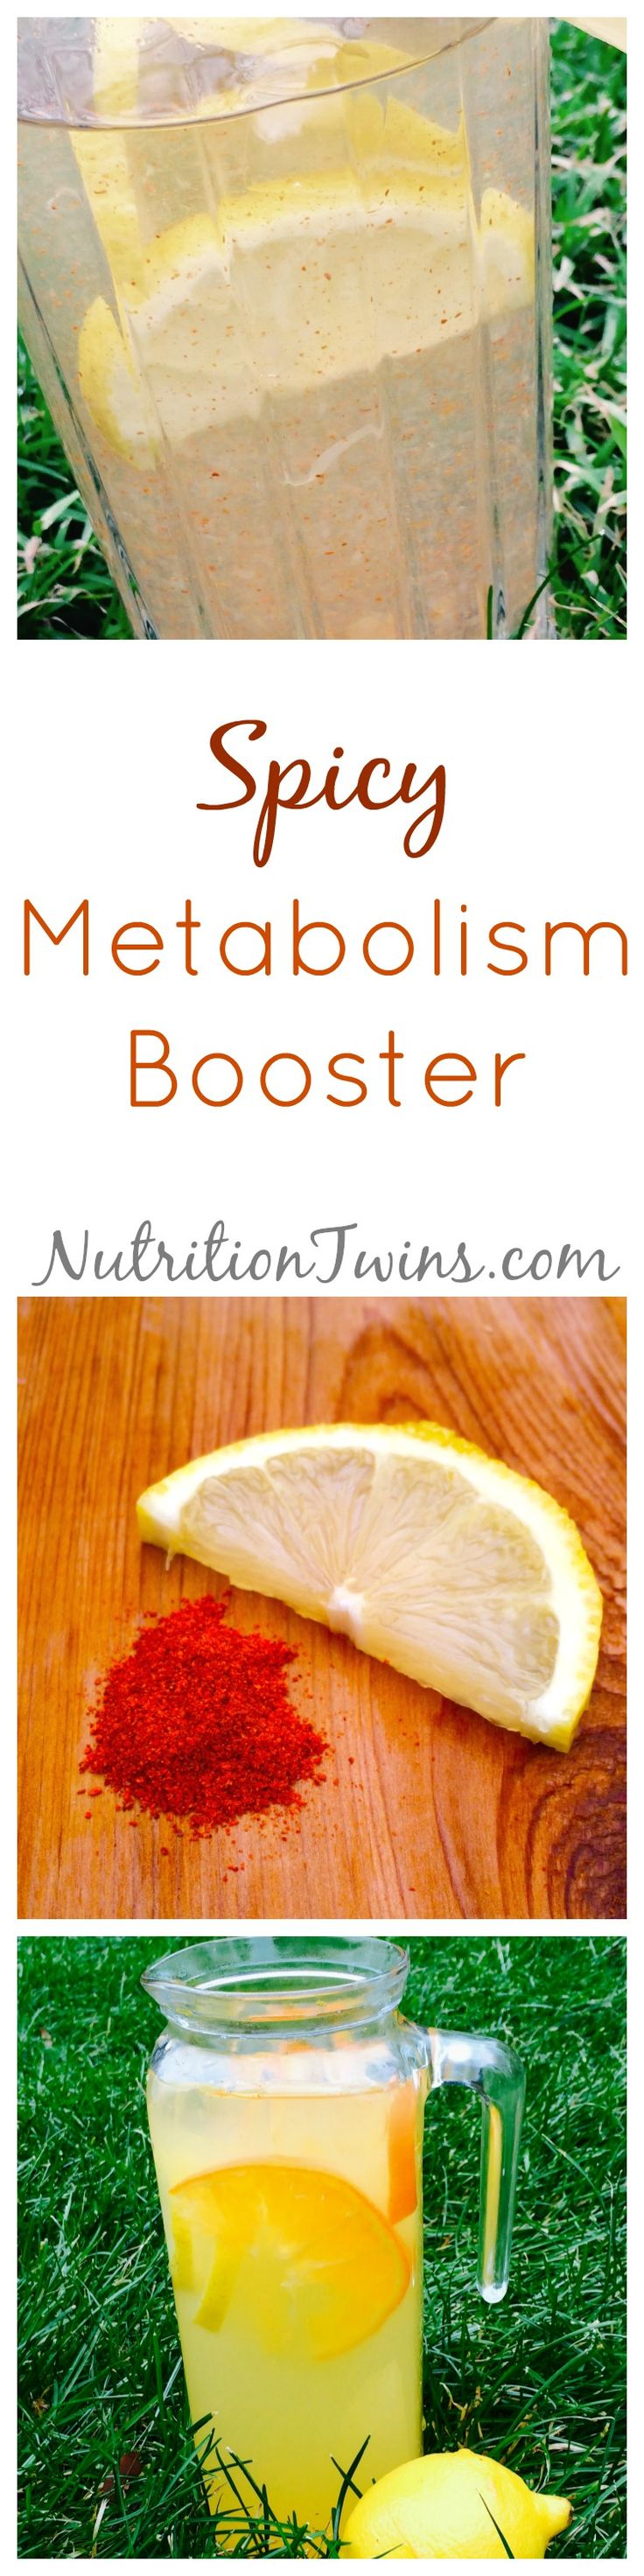 Spicy Metabolism Booster | Only 5 Calories | Spicy Lemonade to kickstart Metabolism and help to flush bloat | Please check out our 21 Day Body Reboot www.NutritionTwins.com